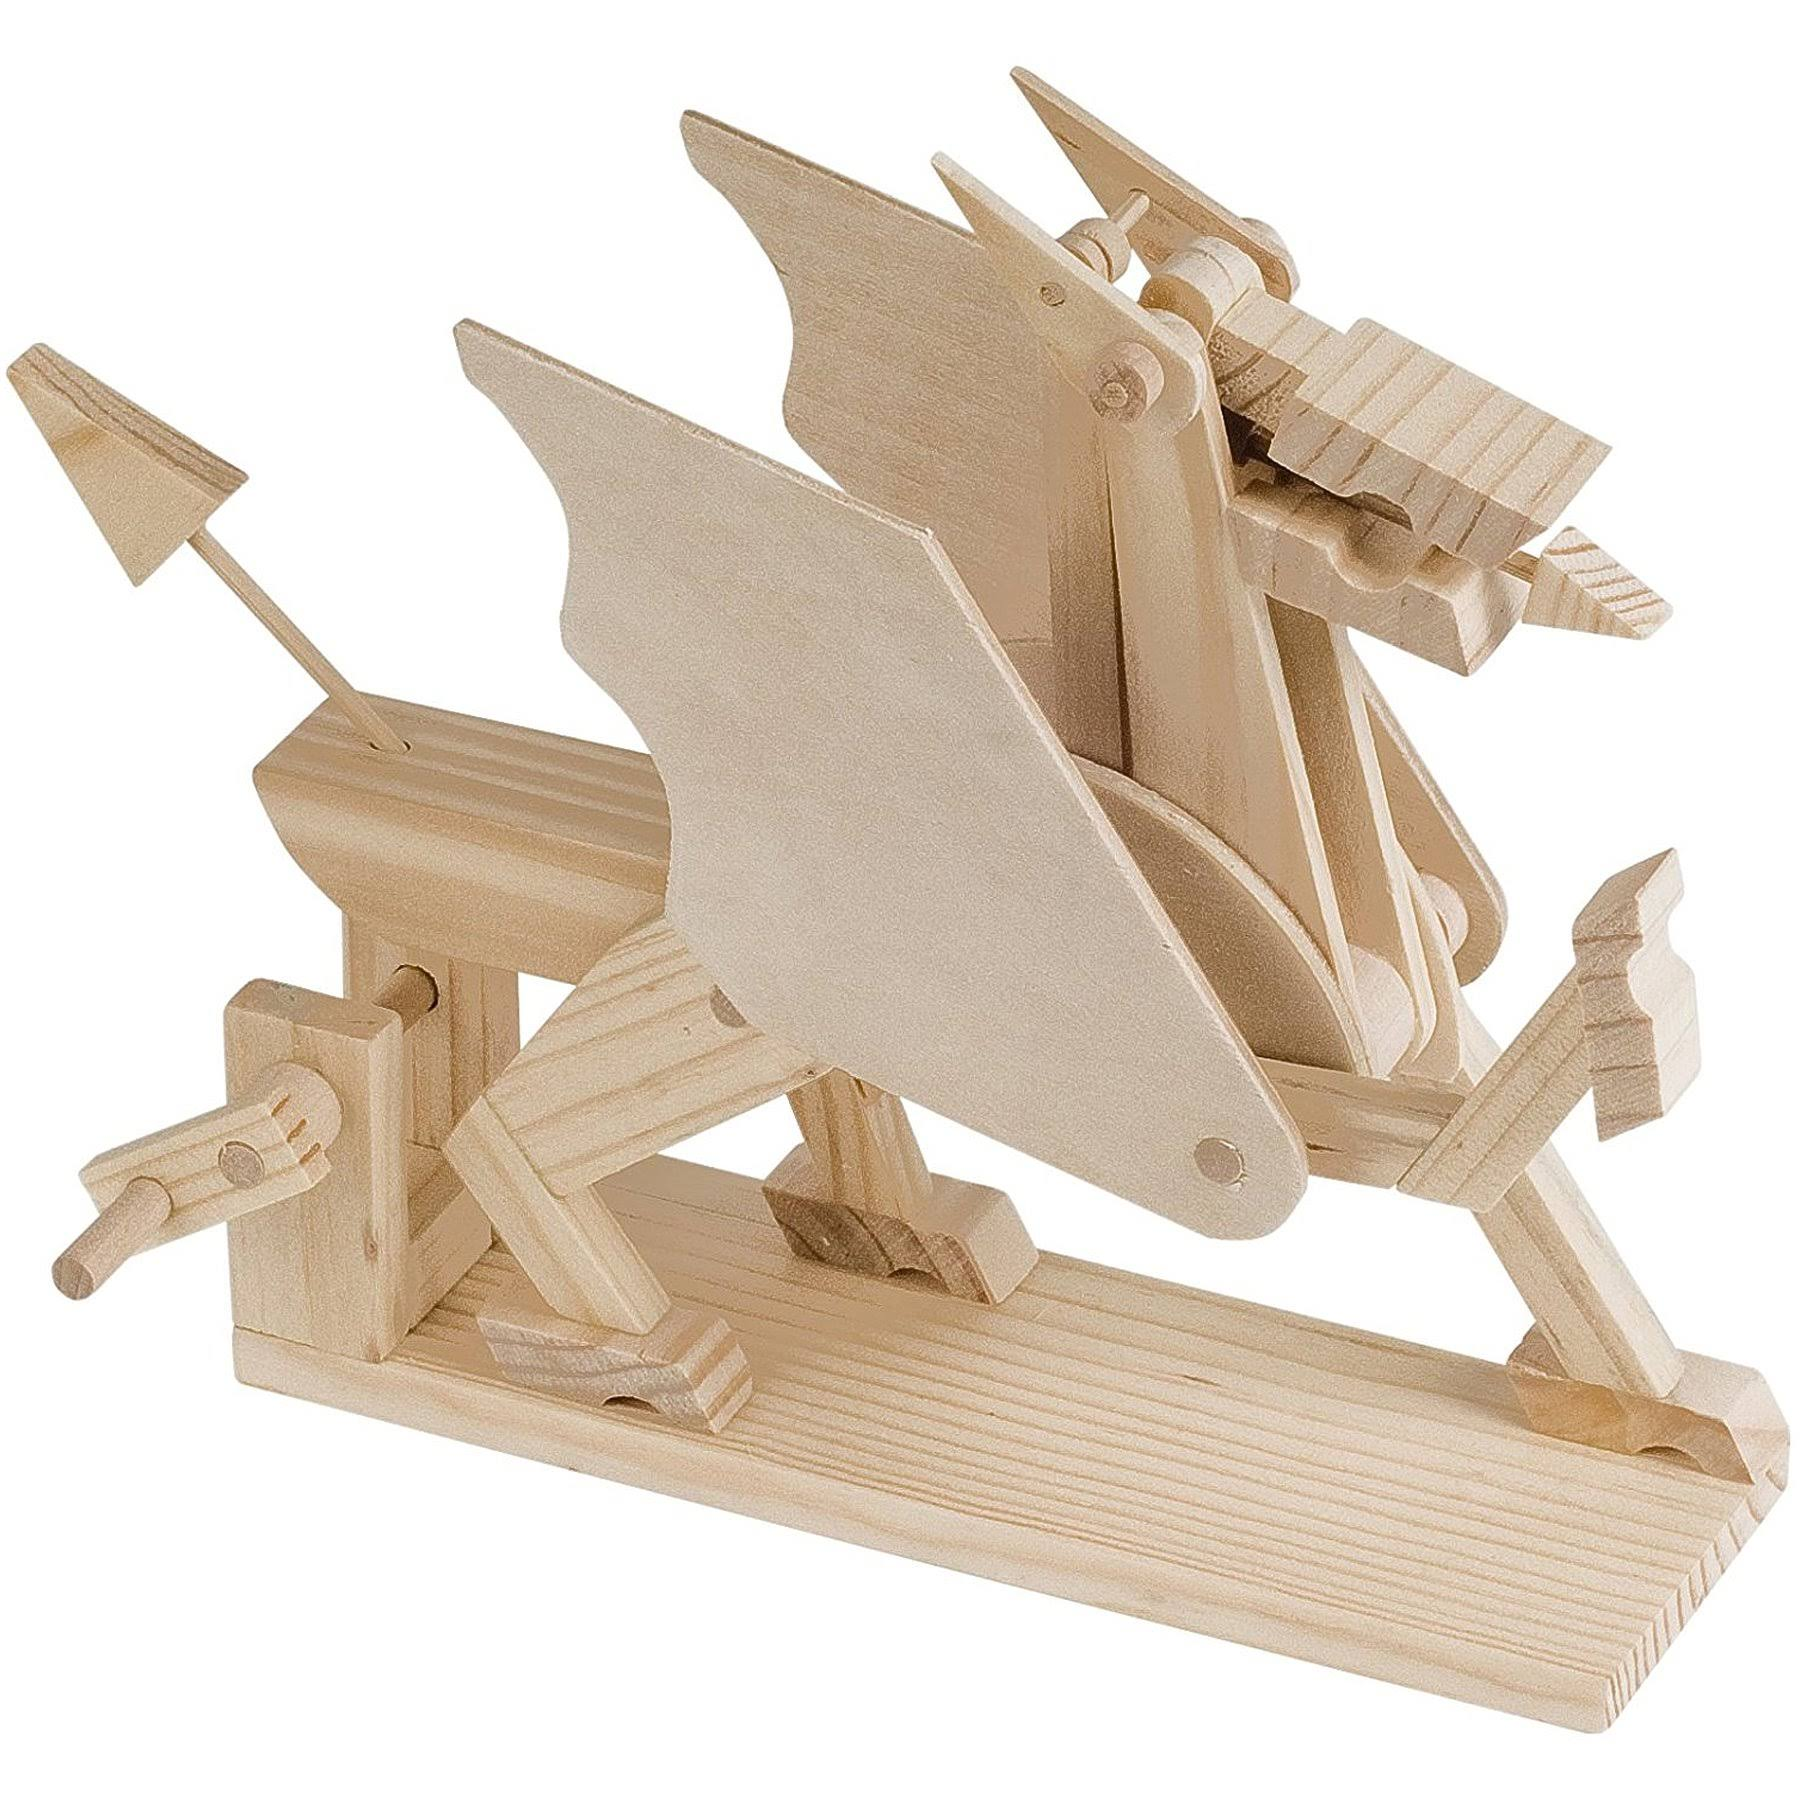 Timberkits - Dragon - Mechanical Wooden Construction Kit